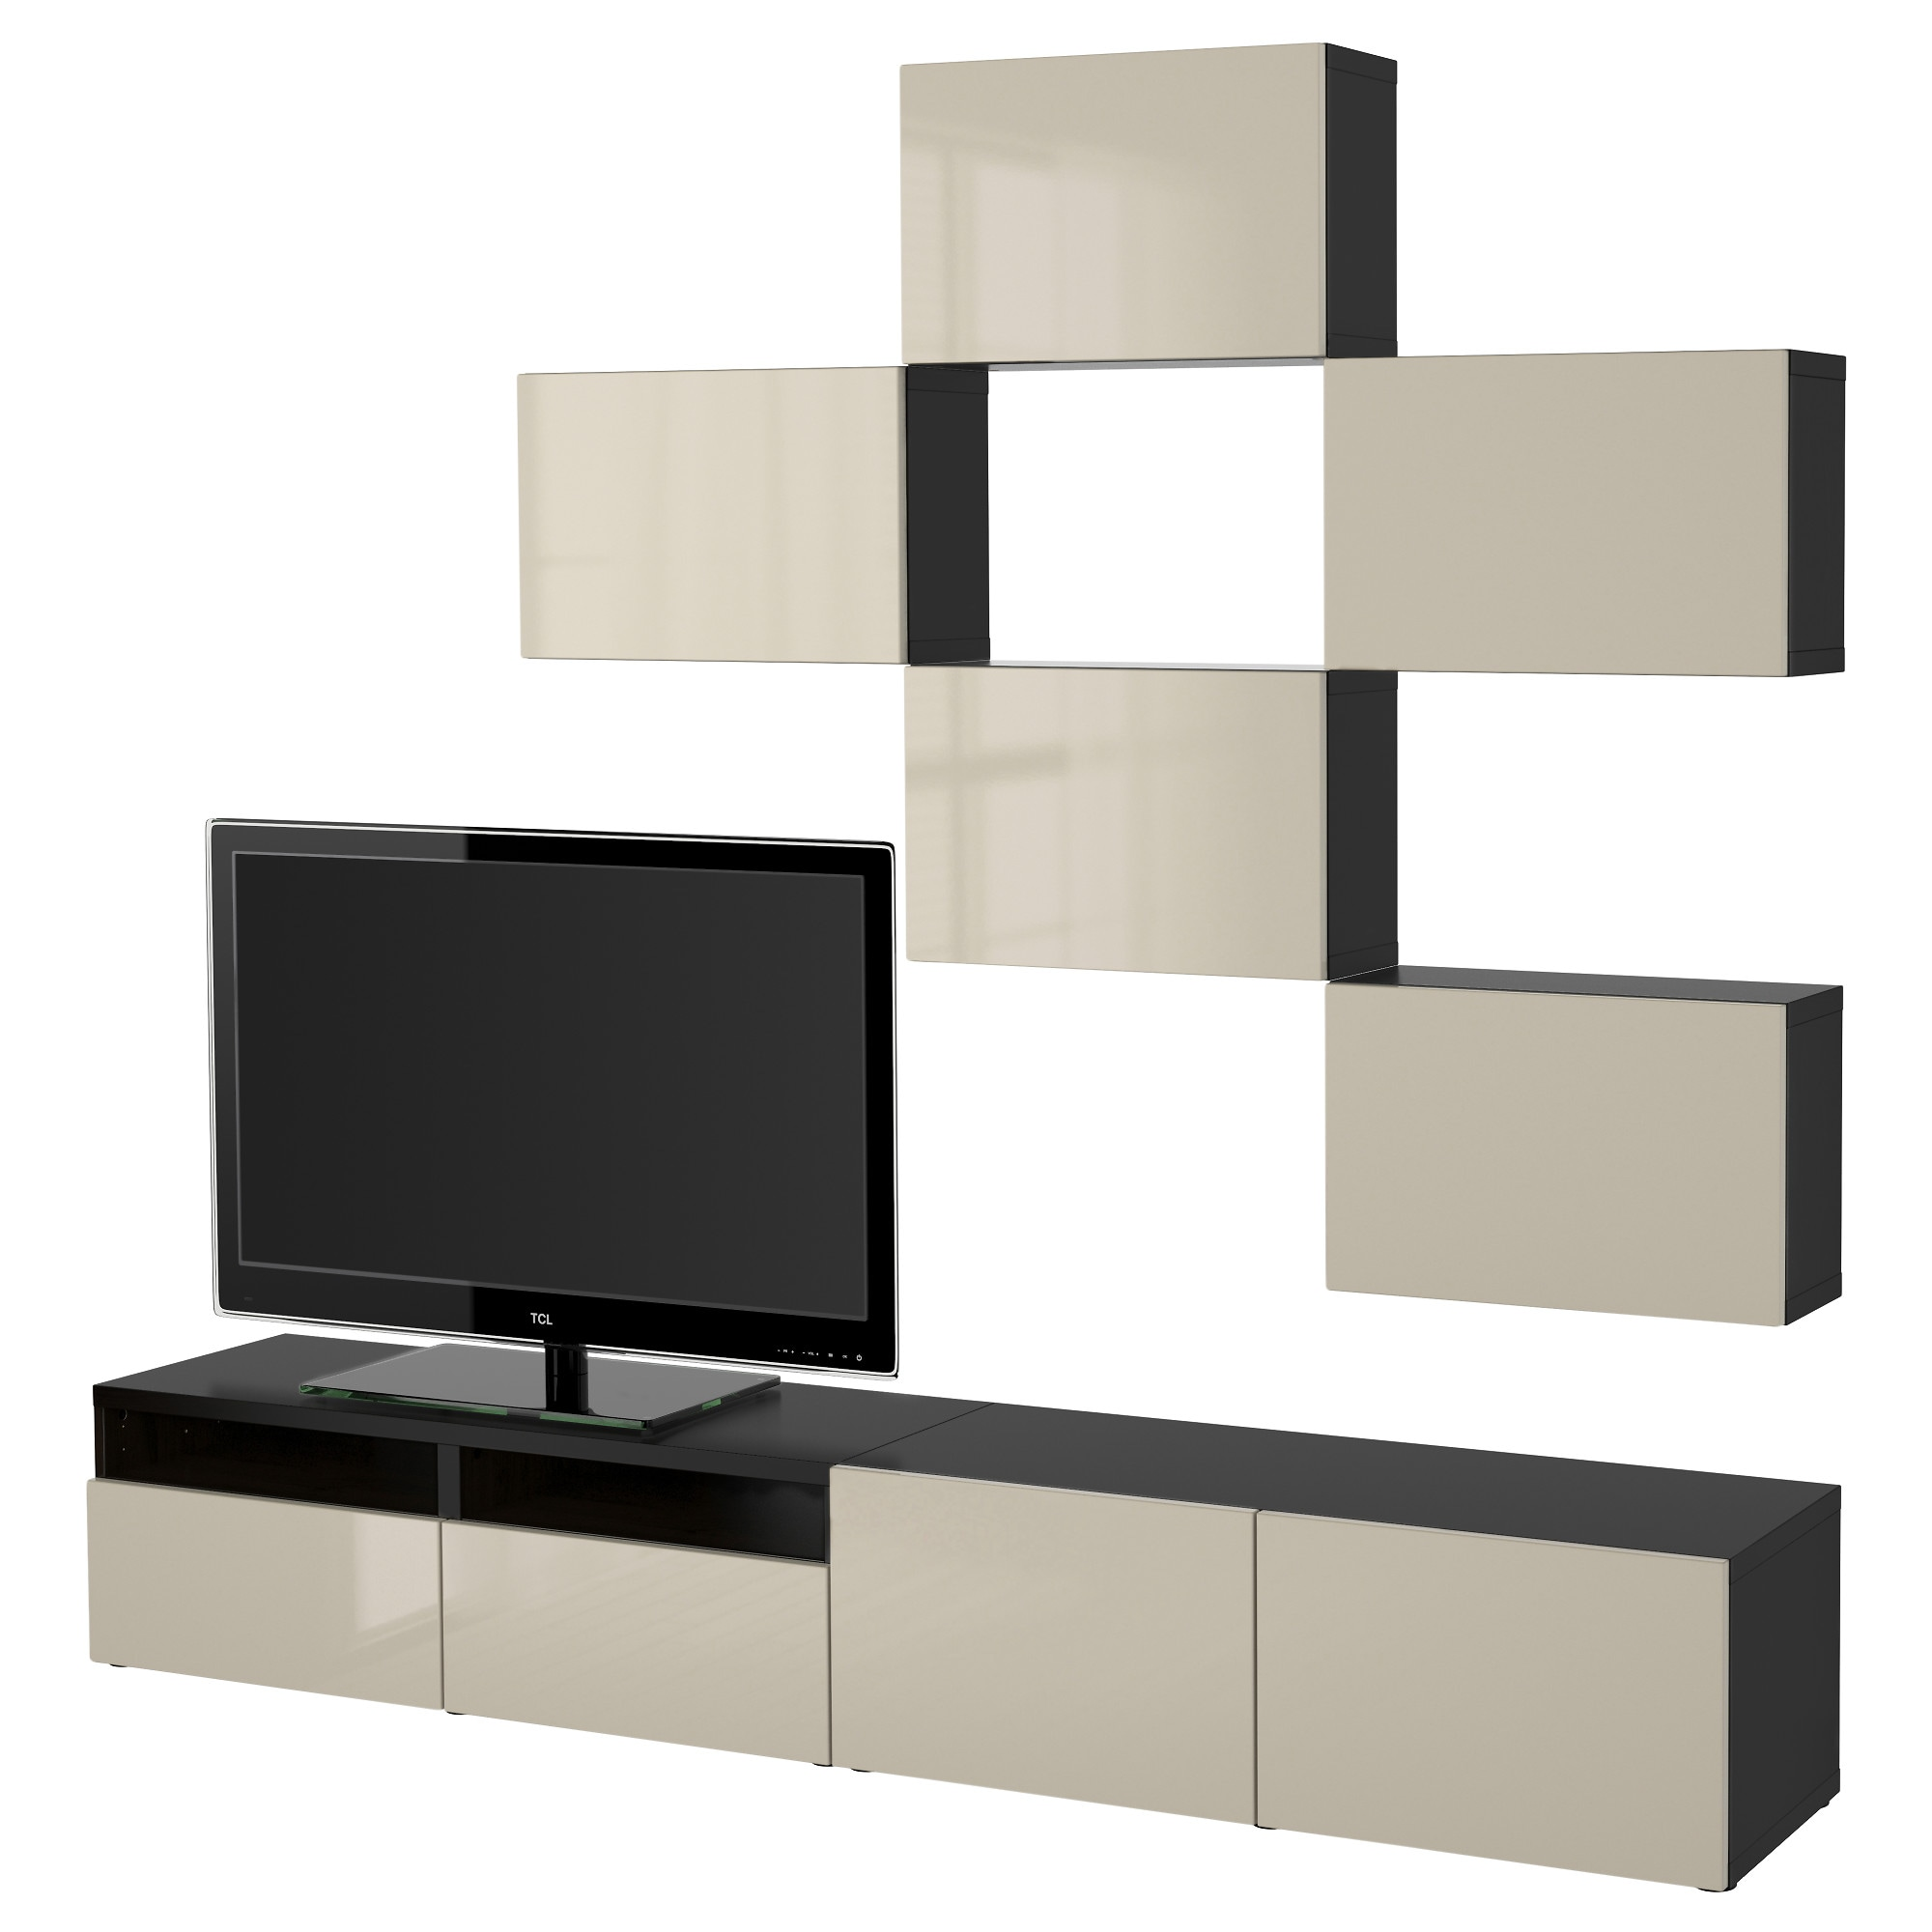 Ikea Meuble Tv Besta - Best Tv Storage Combination Black Brown Selsviken High Gloss [mjhdah]https://i.pinimg.com/originals/a2/c6/b5/a2c6b5a21a6d073e746a09ba34b46a15.png